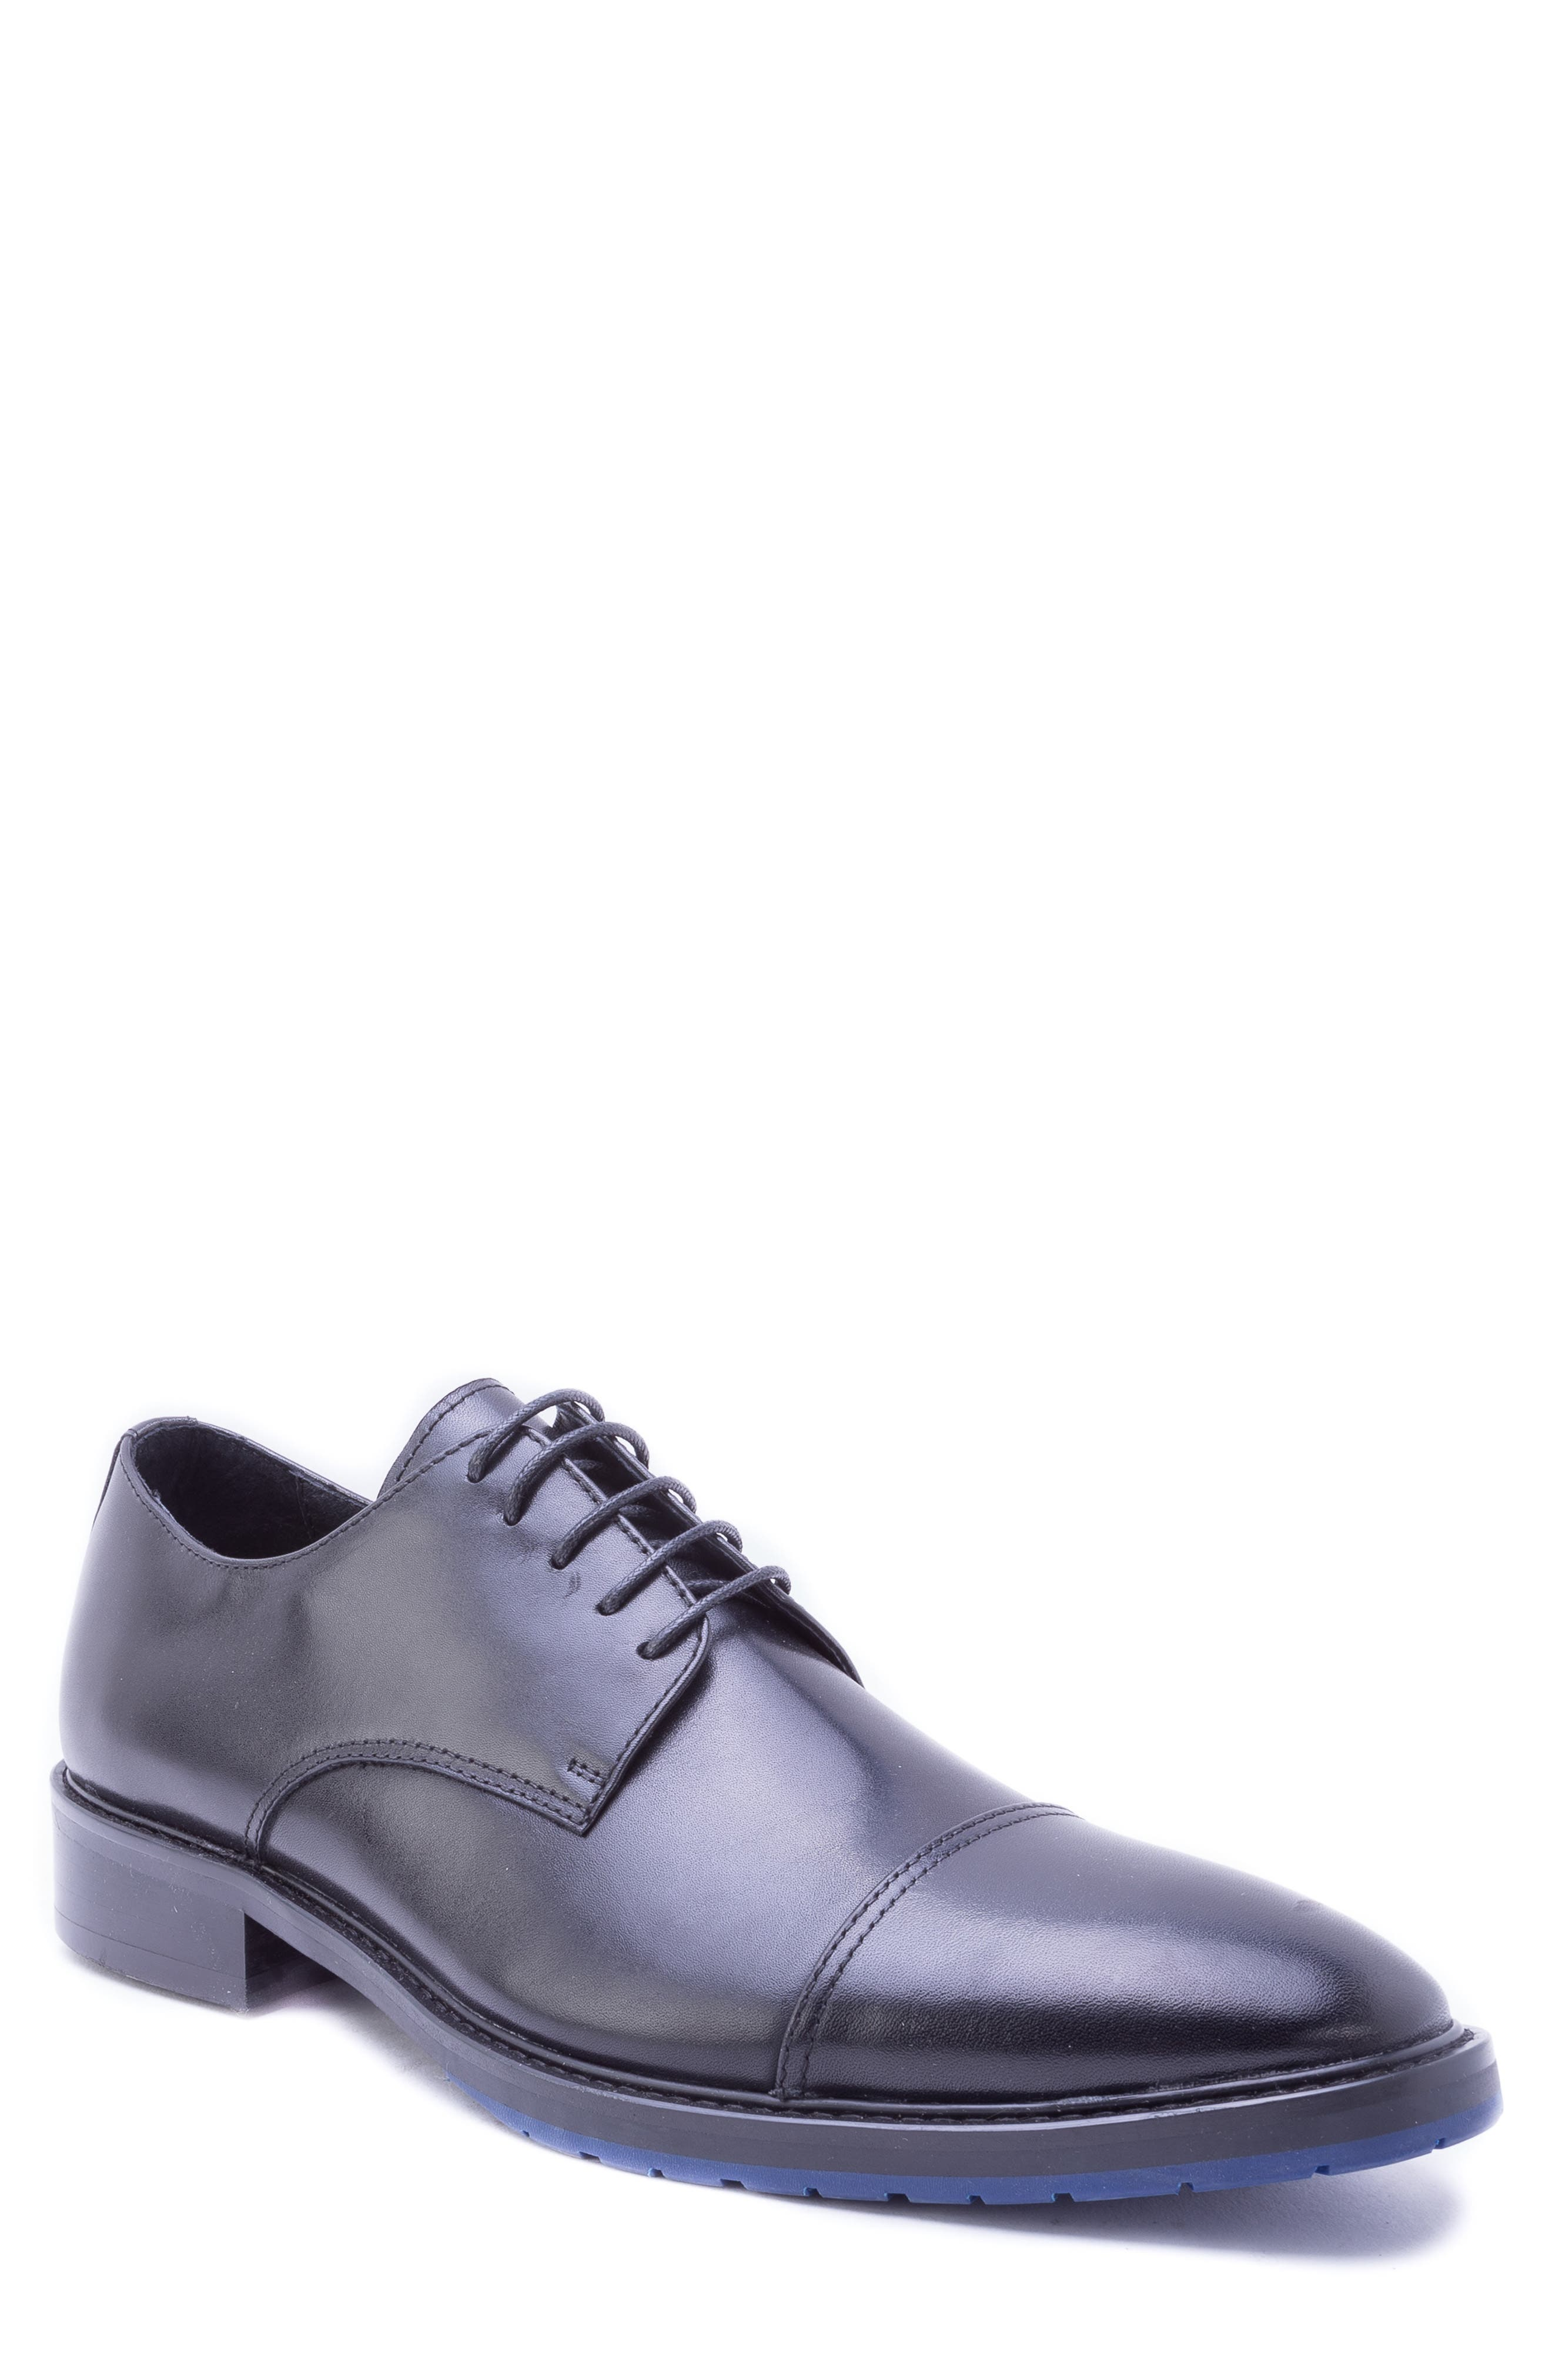 Welti Cap Toe Derby,                             Main thumbnail 1, color,                             BLACK LEATHER